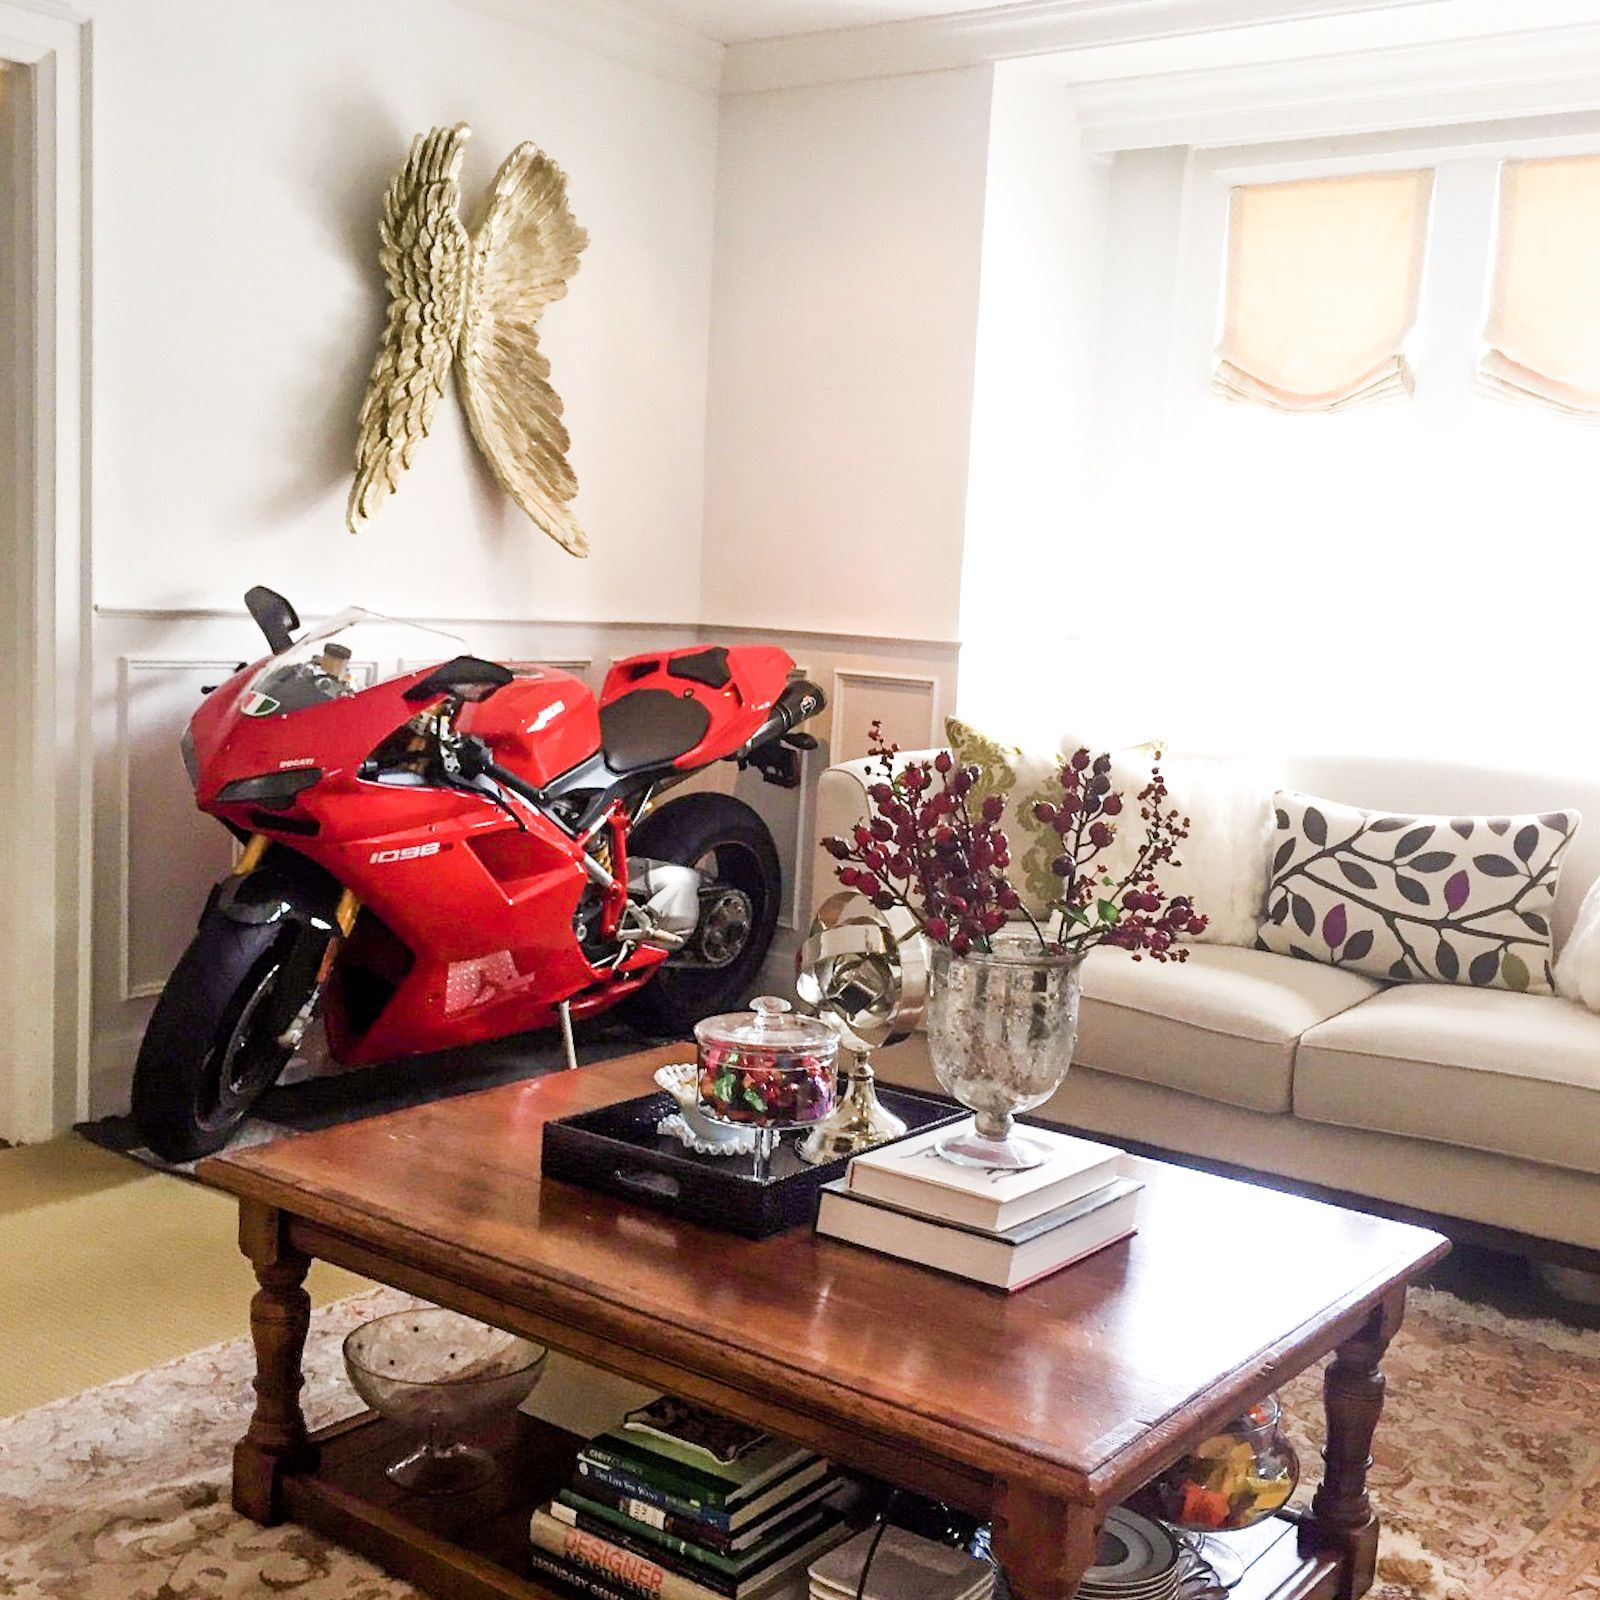 Interior Design Cost For Living Room Angel Wings In A Living Room Designedlavish Homeprice $250